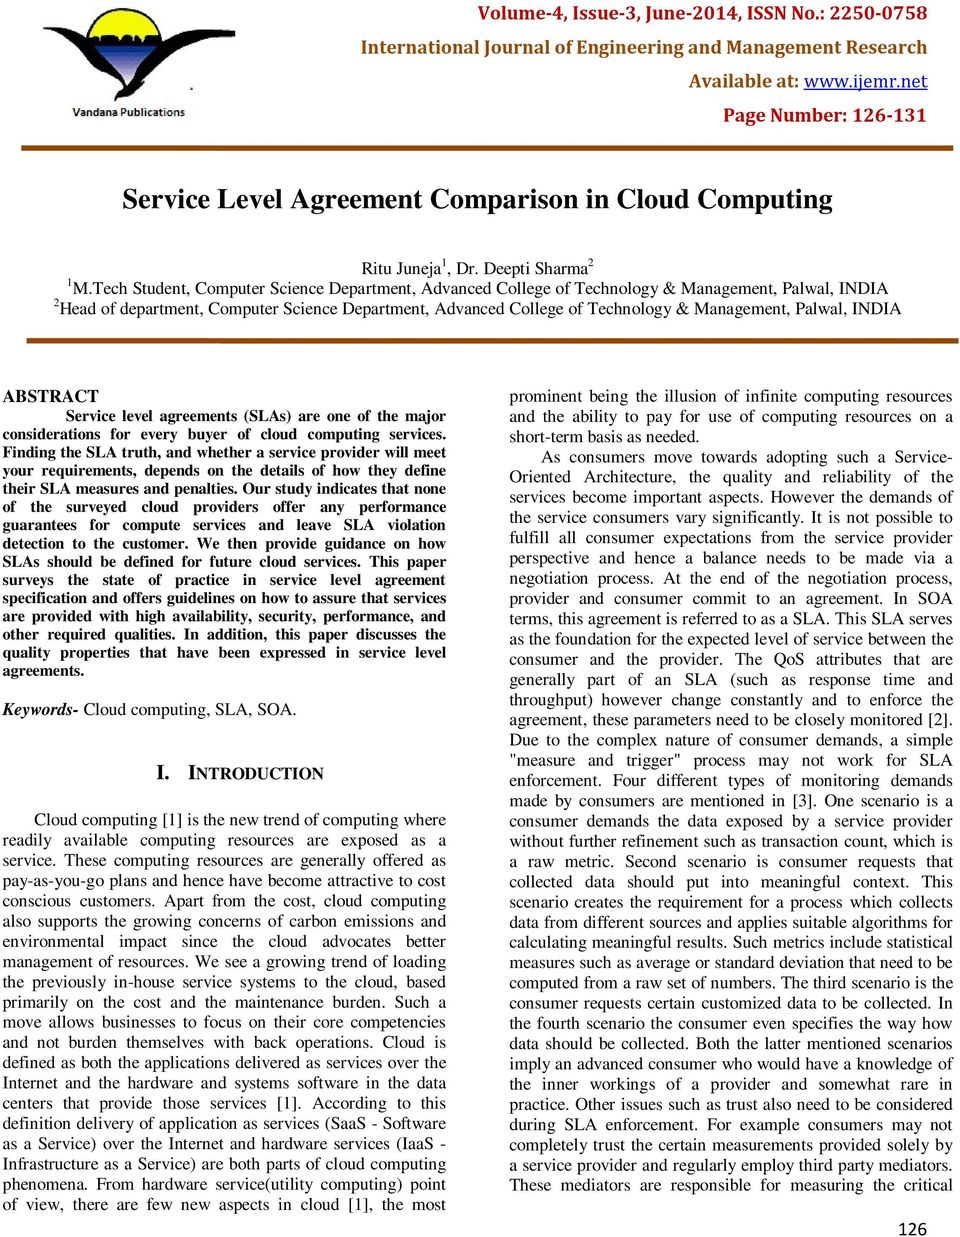 Service Level Agreement Comparison In Cloud Computing Pdf